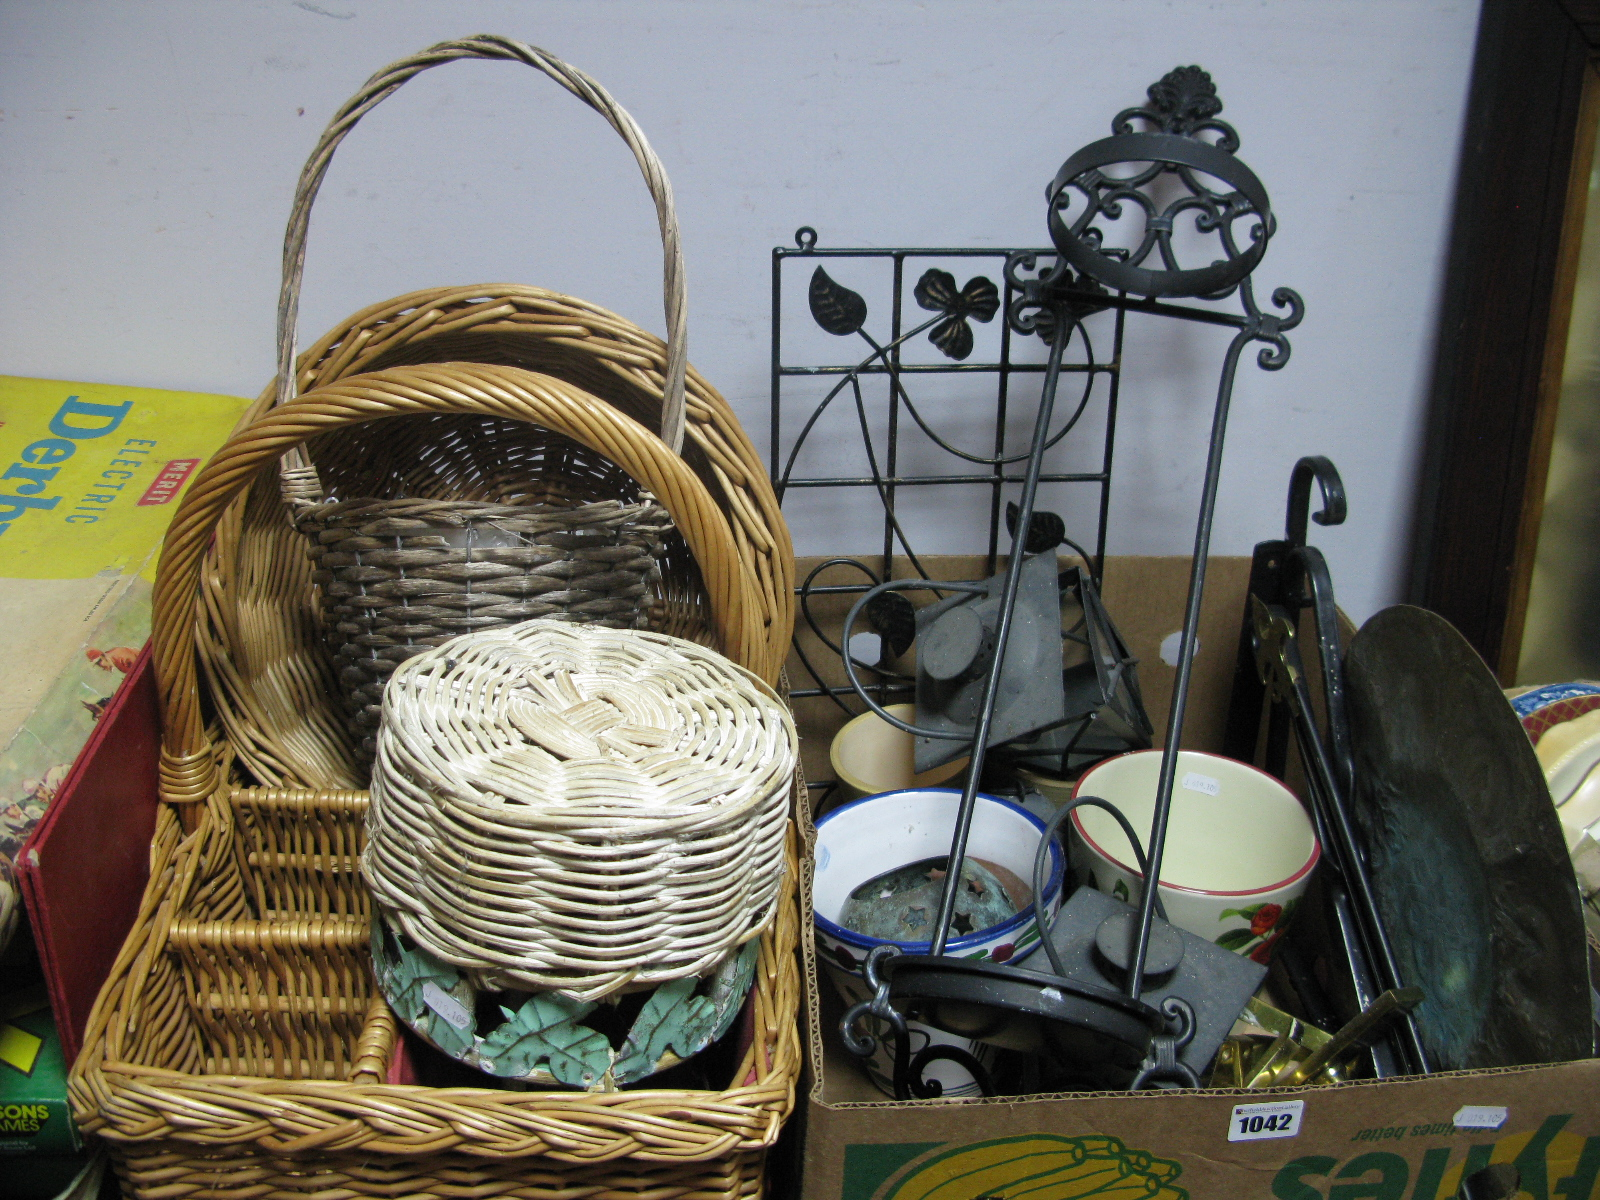 Lot 1042 - Plant Pot Holders, assorted baskets, brass door handles, brass charger, etc.